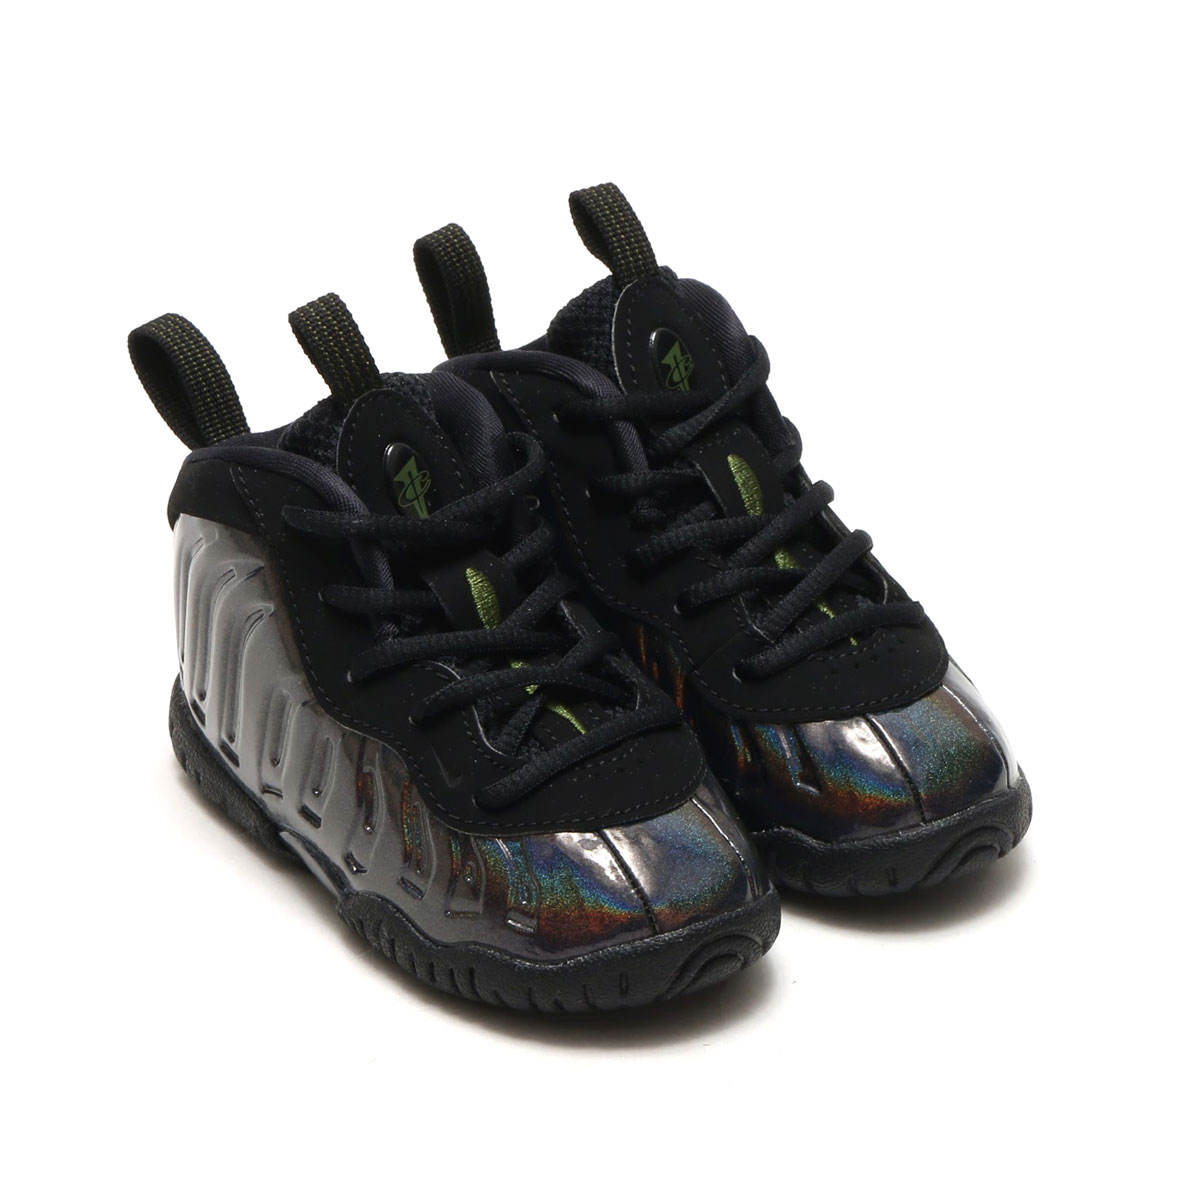 NIKE LITTLE POSITE ONE (TD) (LEGION GREEN/BLACK-BLACK) (ナイキリトルポジット 1 TD)